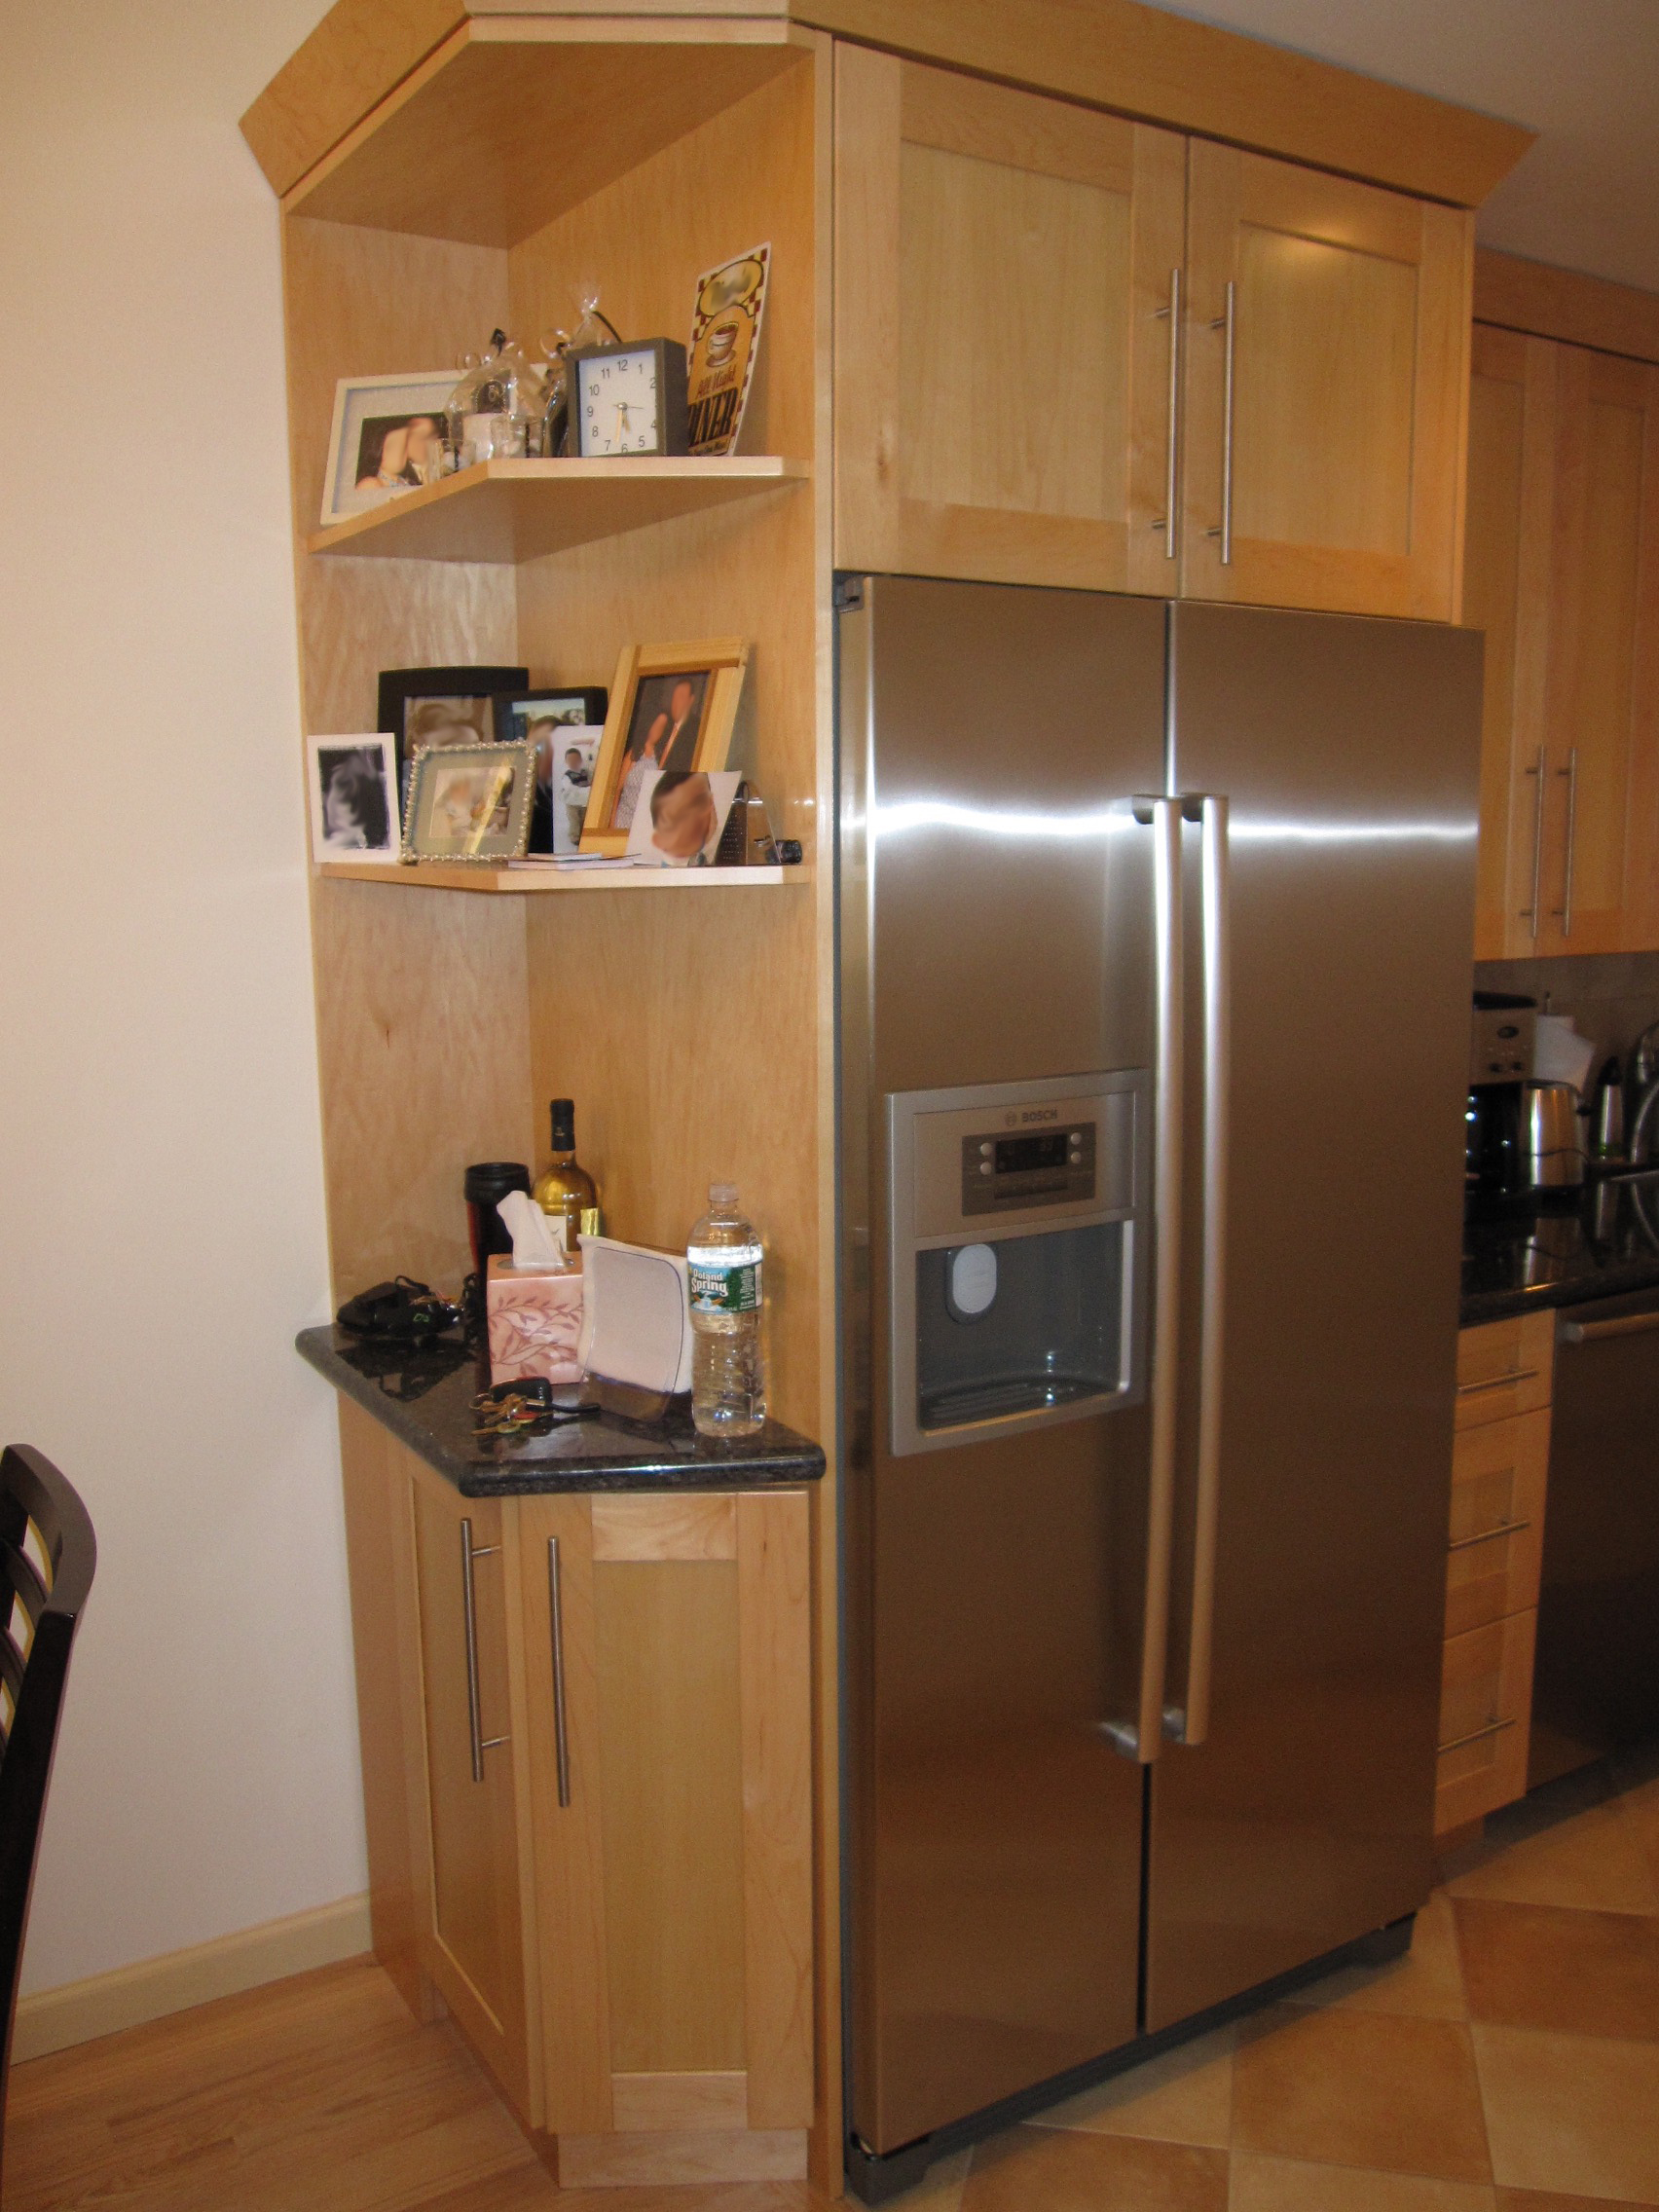 Additional photo for property listing at 1009 Shore Pkwy #2b  Brooklyn, New York 11228 United States